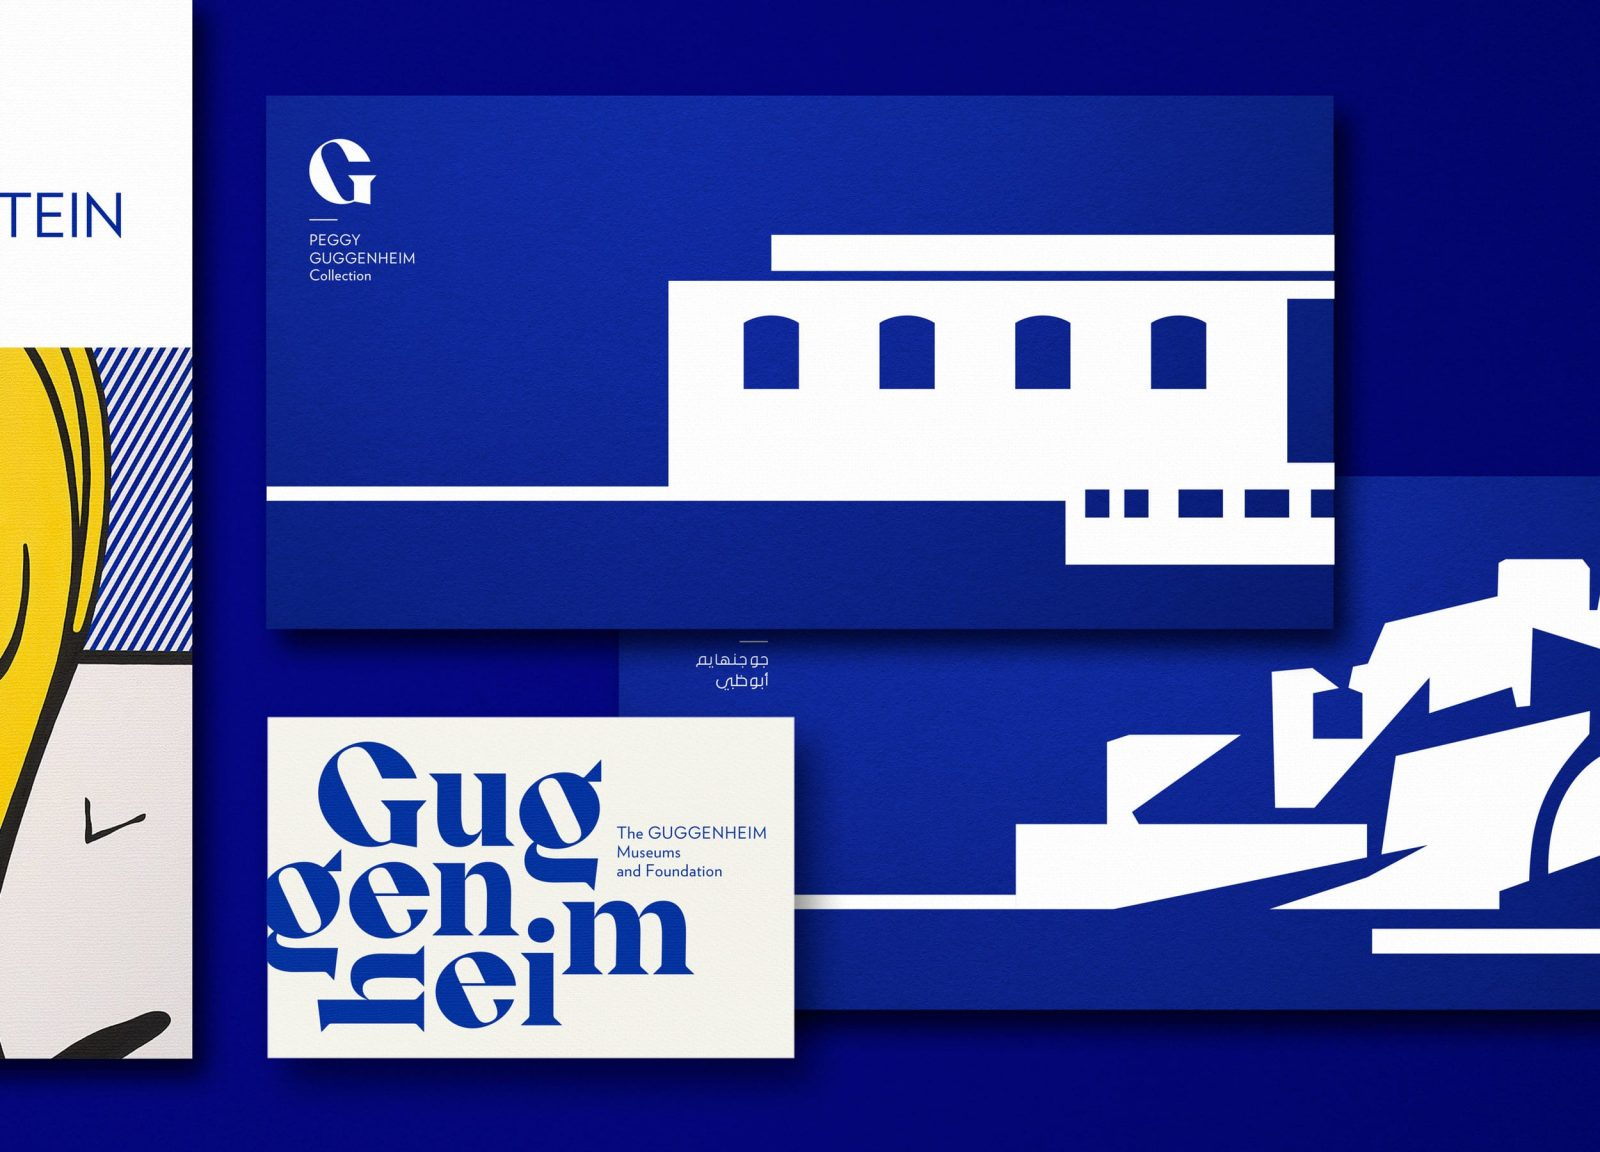 Guggenheim Museums and Foundation Rebranding Concept